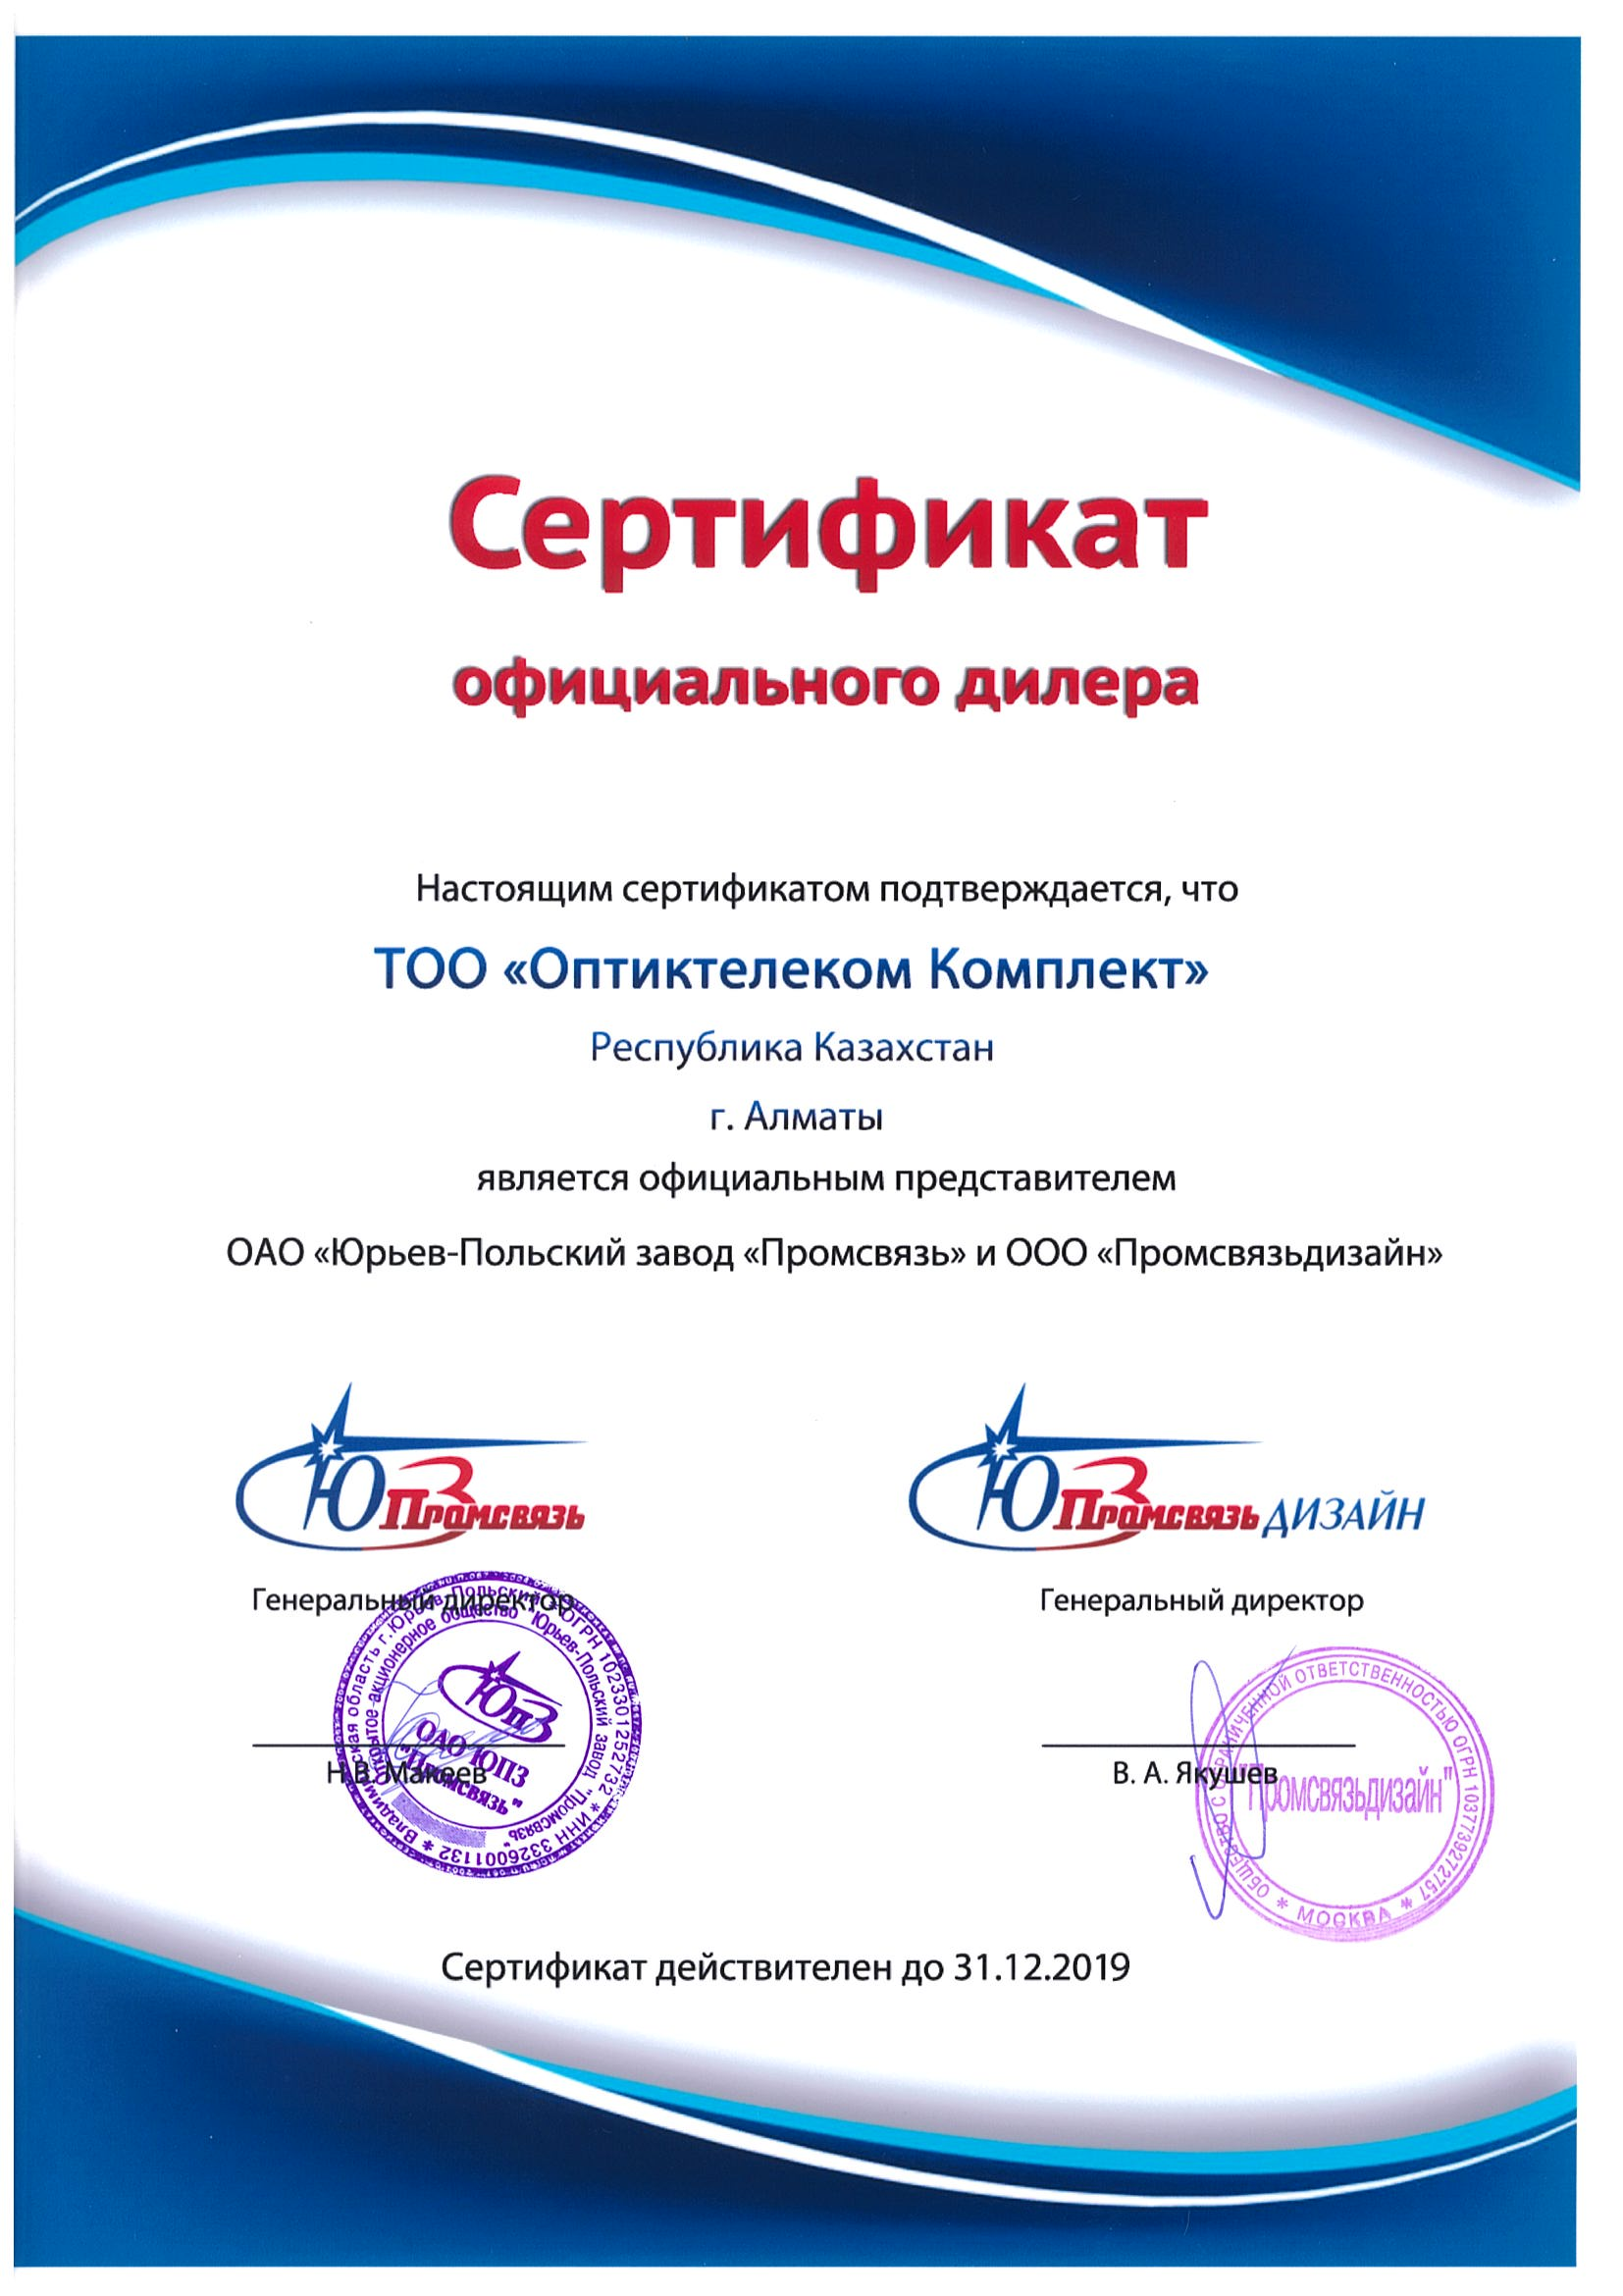 YPZ Promsvyaz JSC and Promsvyazdesign LLC dealer certificate